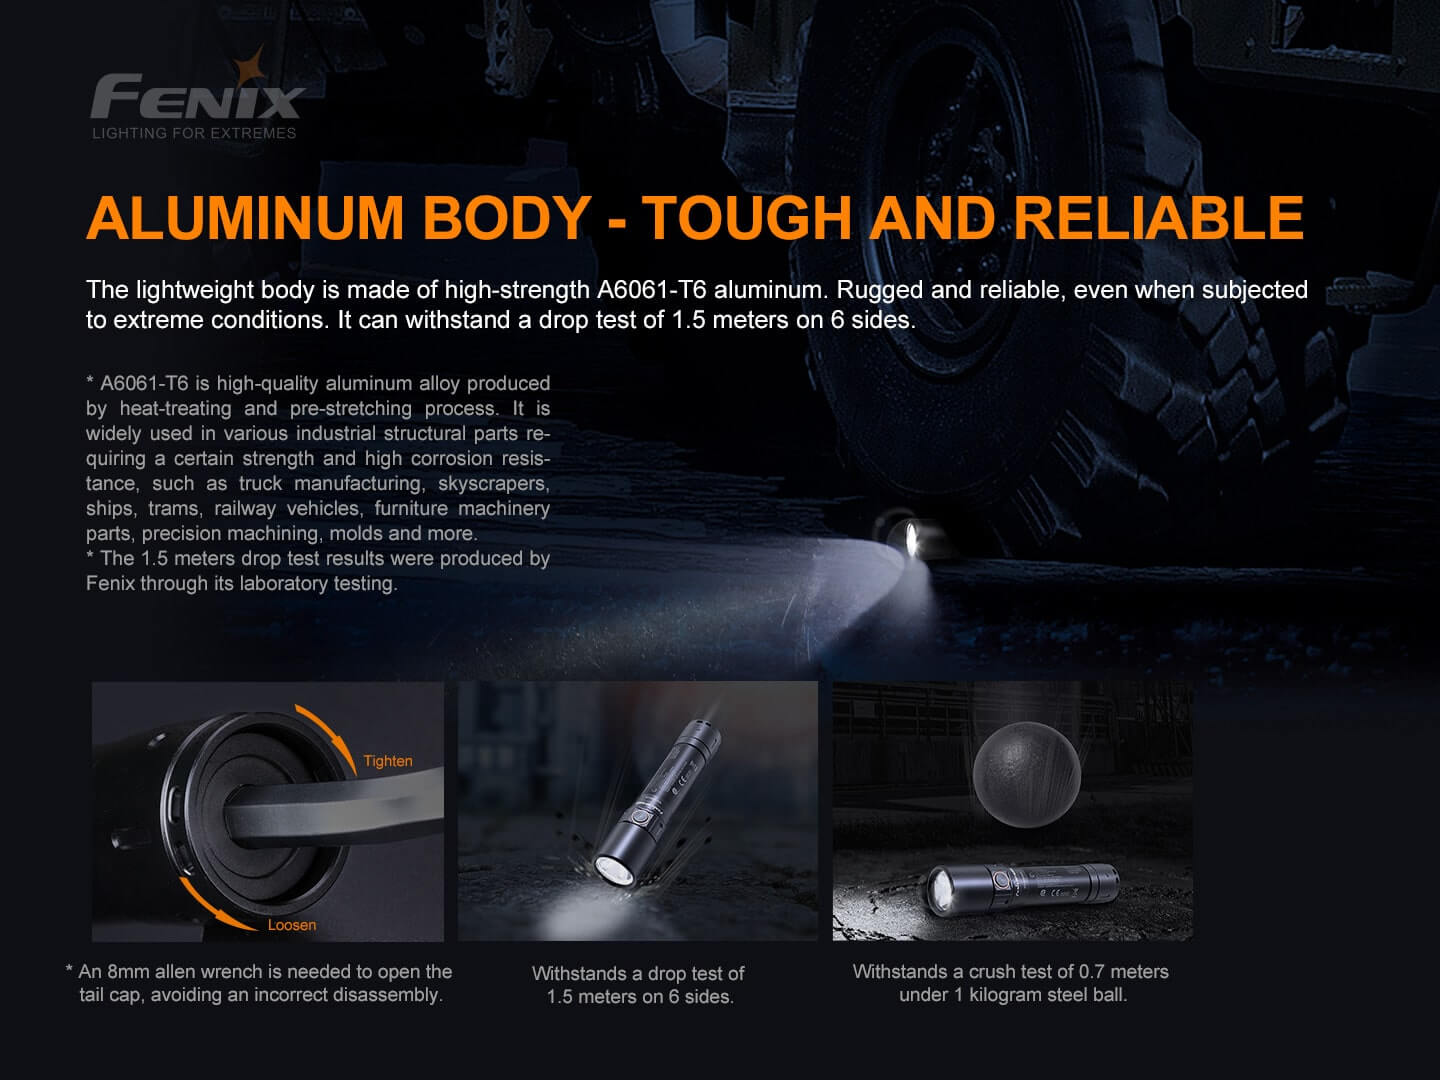 Fenix WF30RE Rechargeable Safe LED Torch, Intrinsically Safe Flameproof/Explosion Proof Torchlight in India, ATEX approved Torch for Zone 1, Zone 2, Zone 21, Zone 22